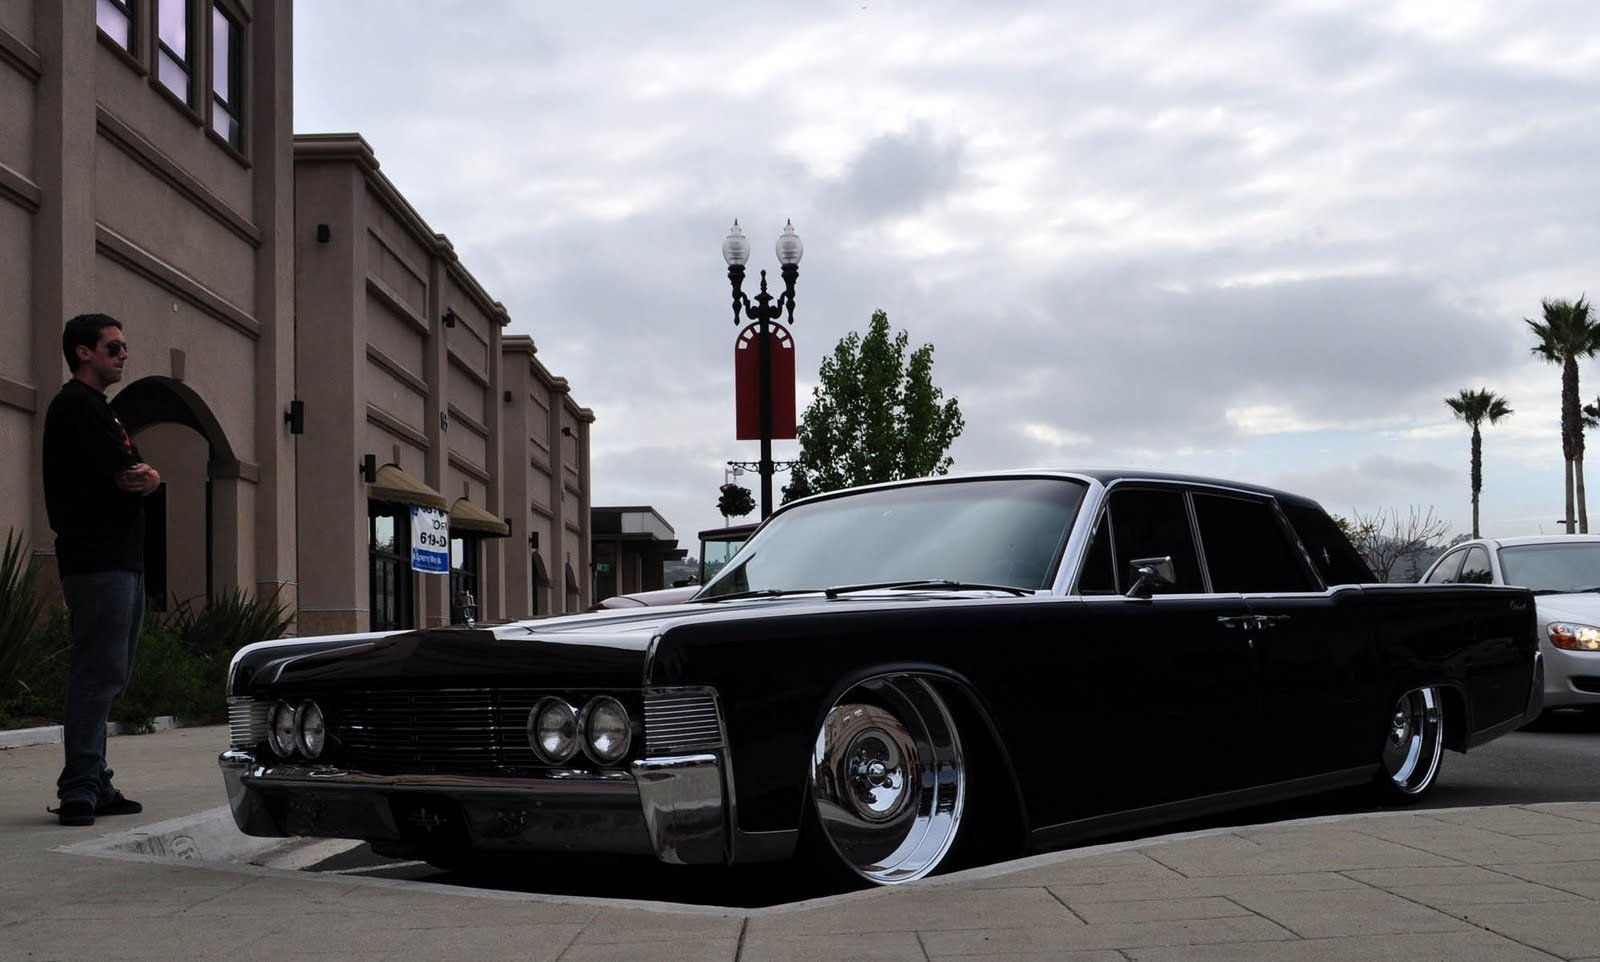 Latest Black Car Lincoln Continental Wallpaper Wide 14213 Free Download